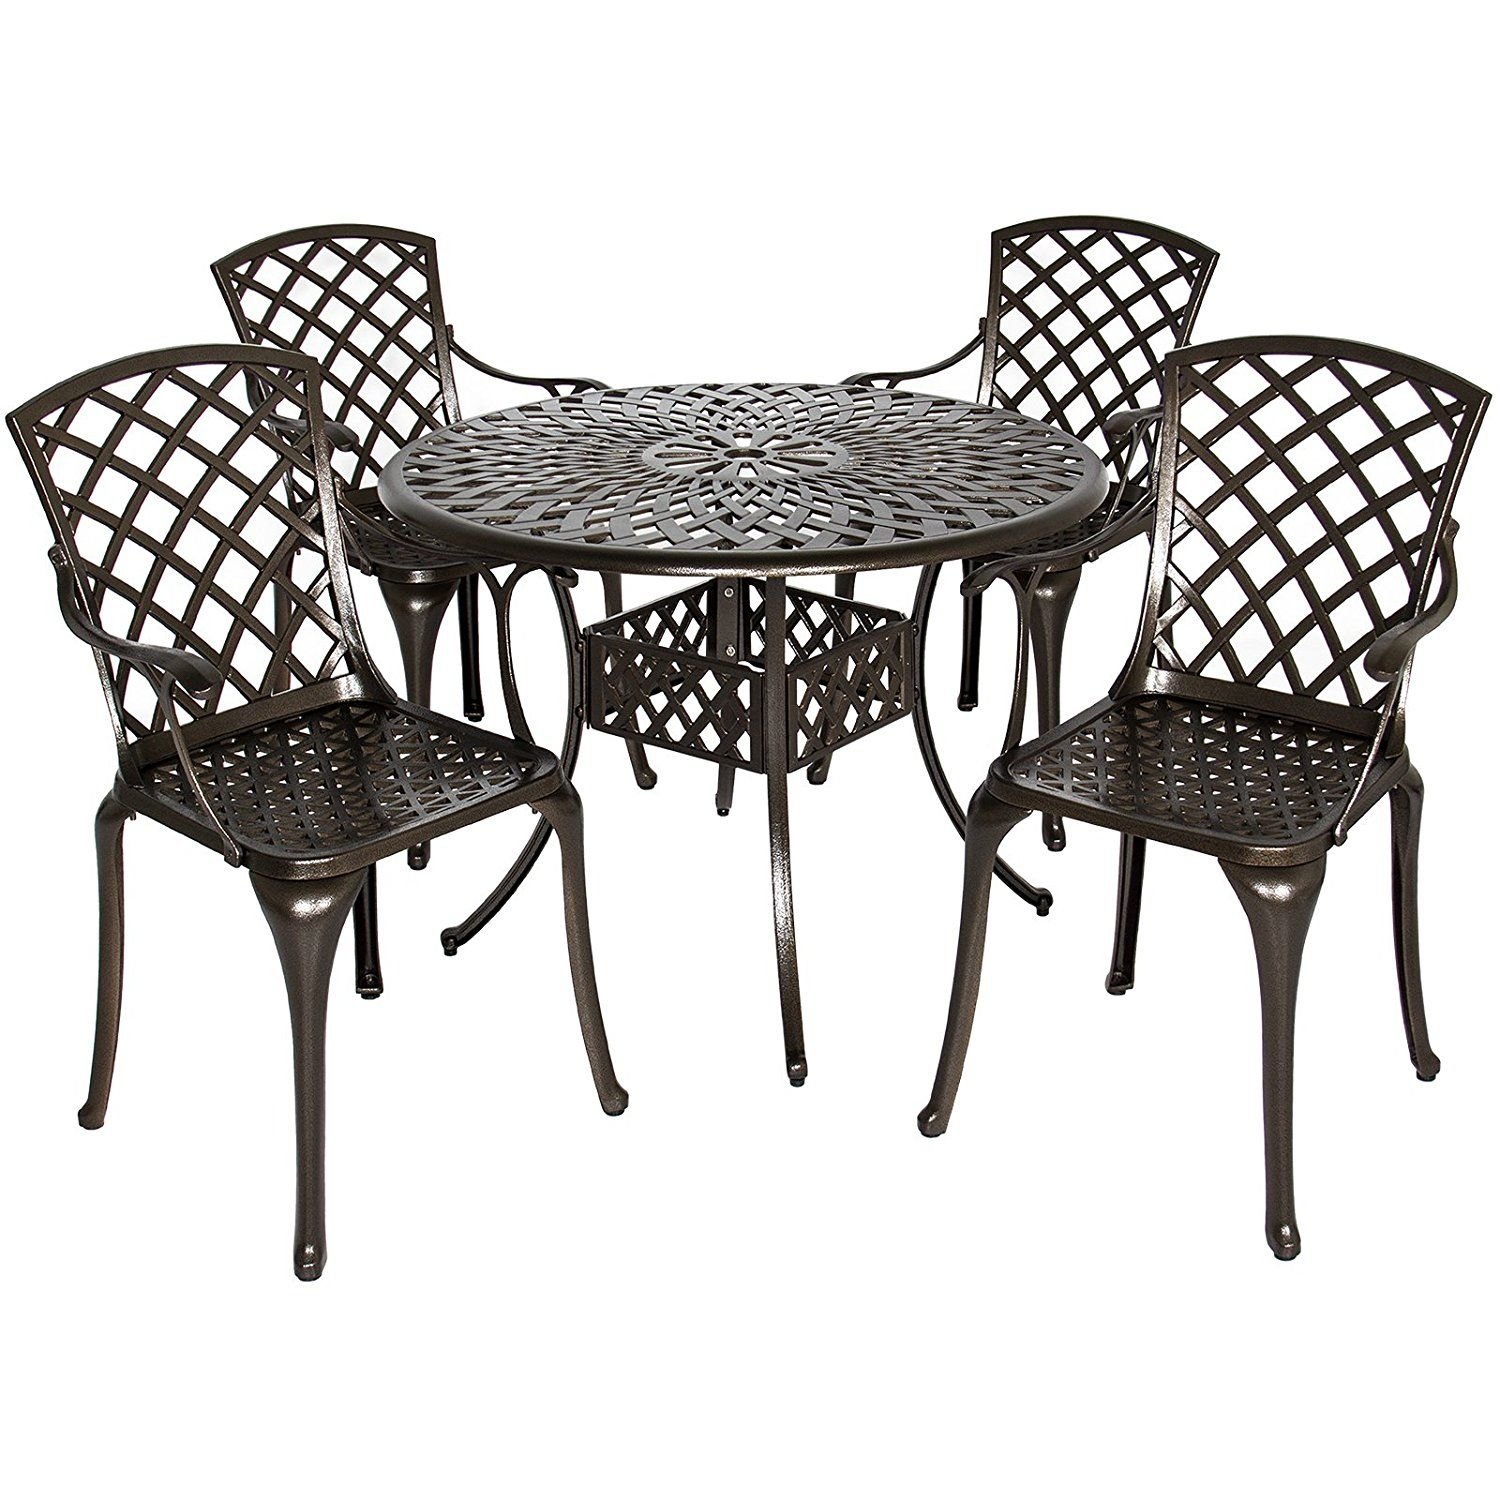 1 Best Choice Products Cast Aluminum Patio Dining Set